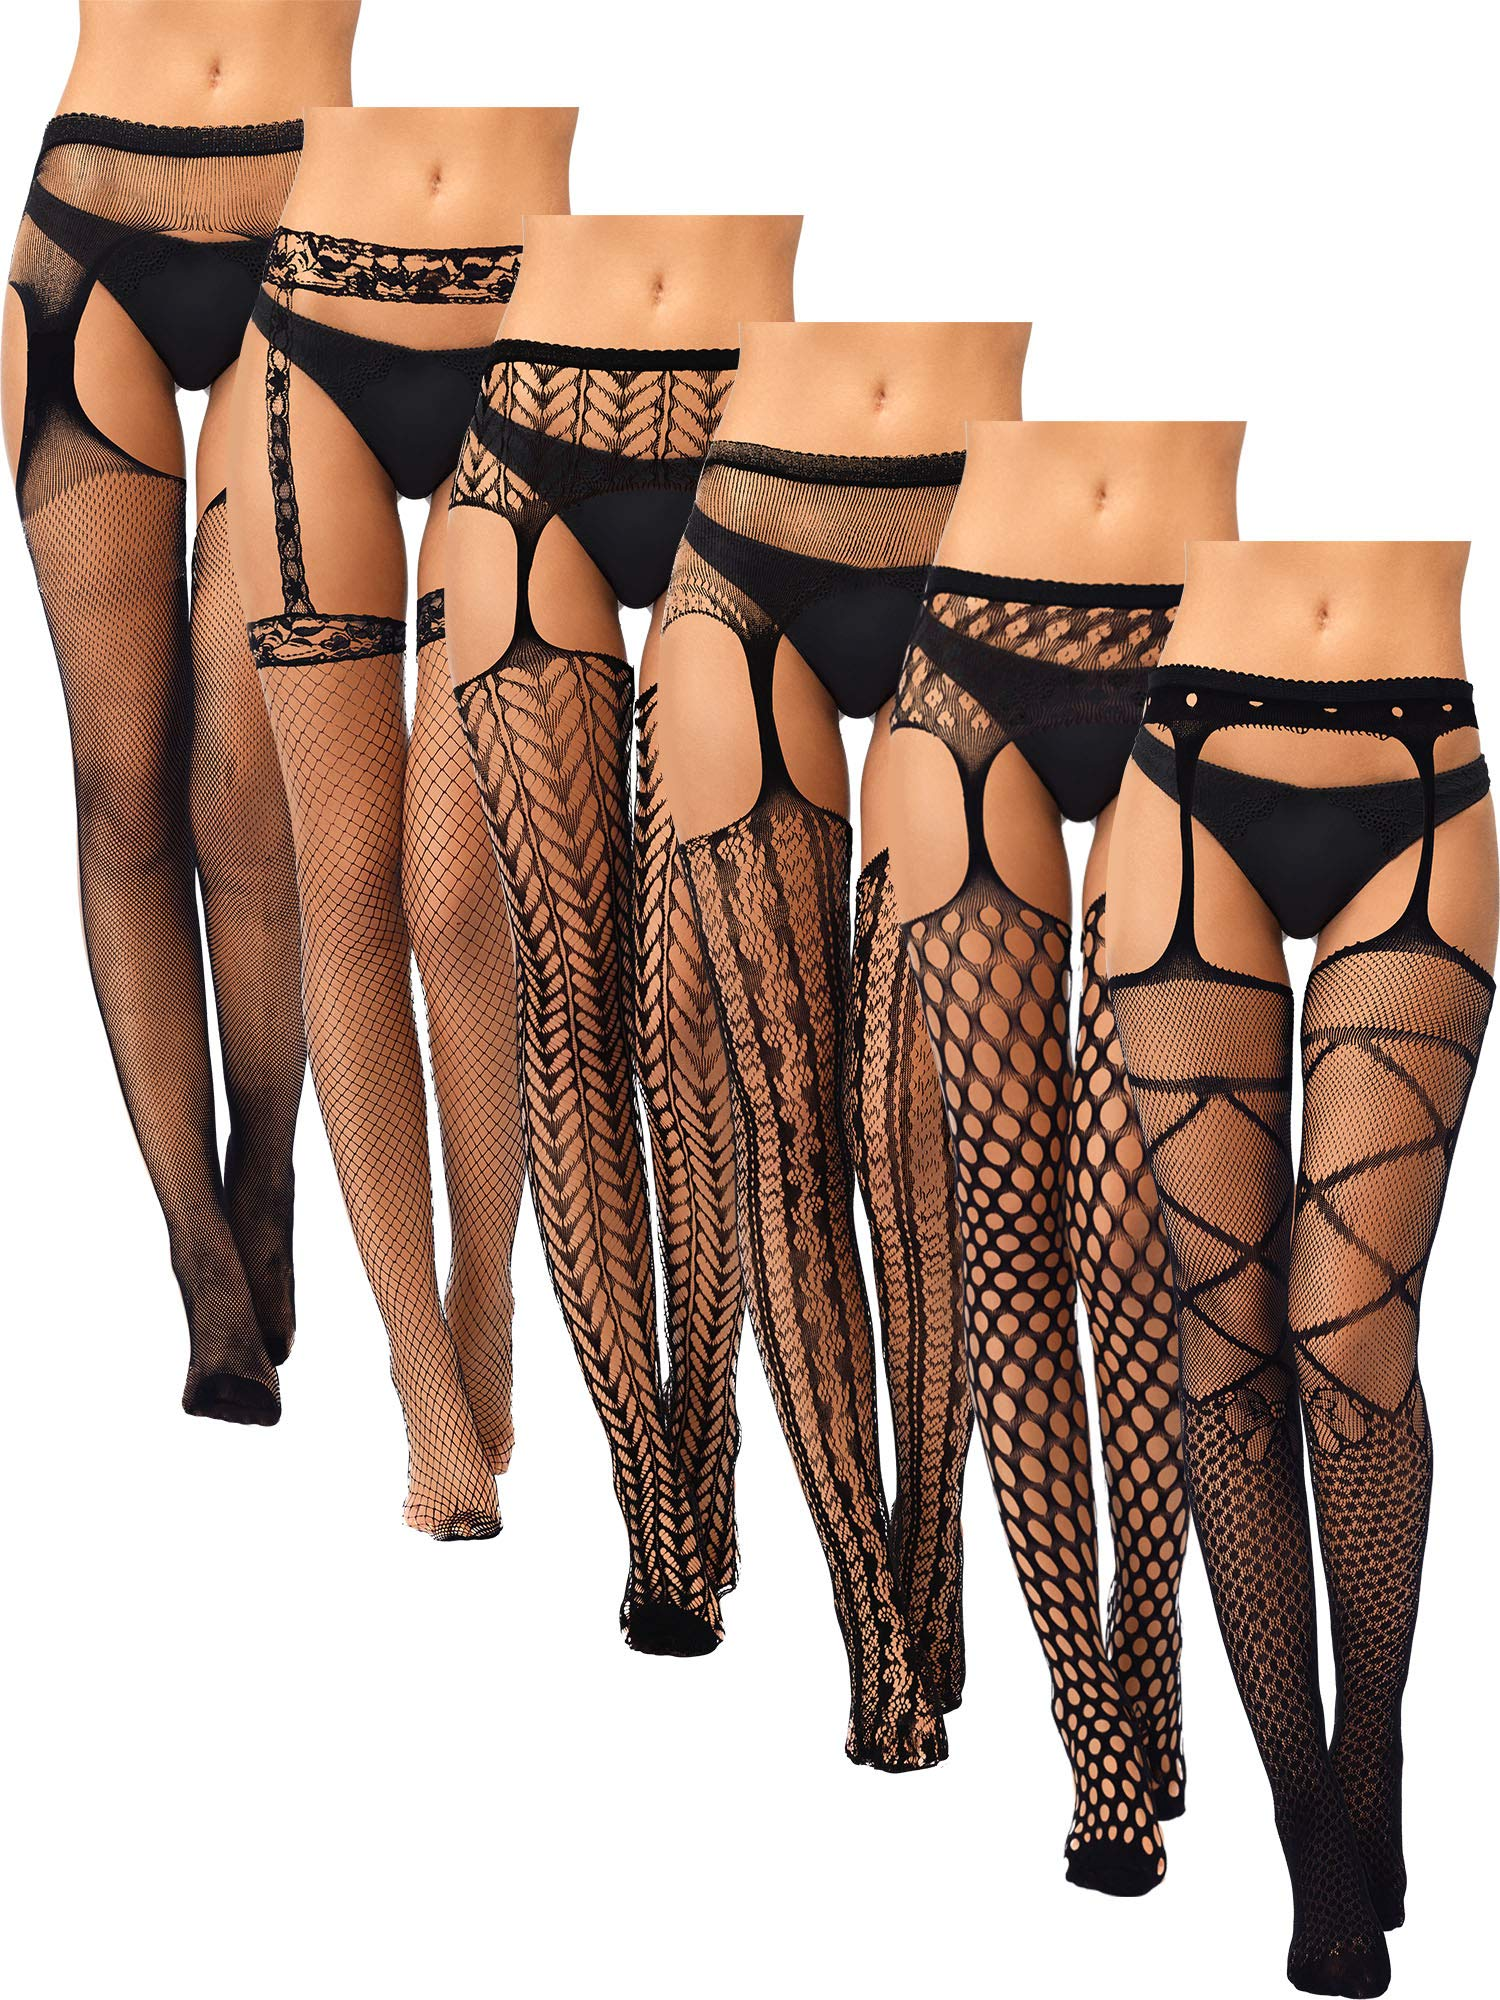 6 Pairs Women Suspender Pantyhose Stockings Valentine's Day Fishnet Tights Stretchy High Stockings for Dress up Favors